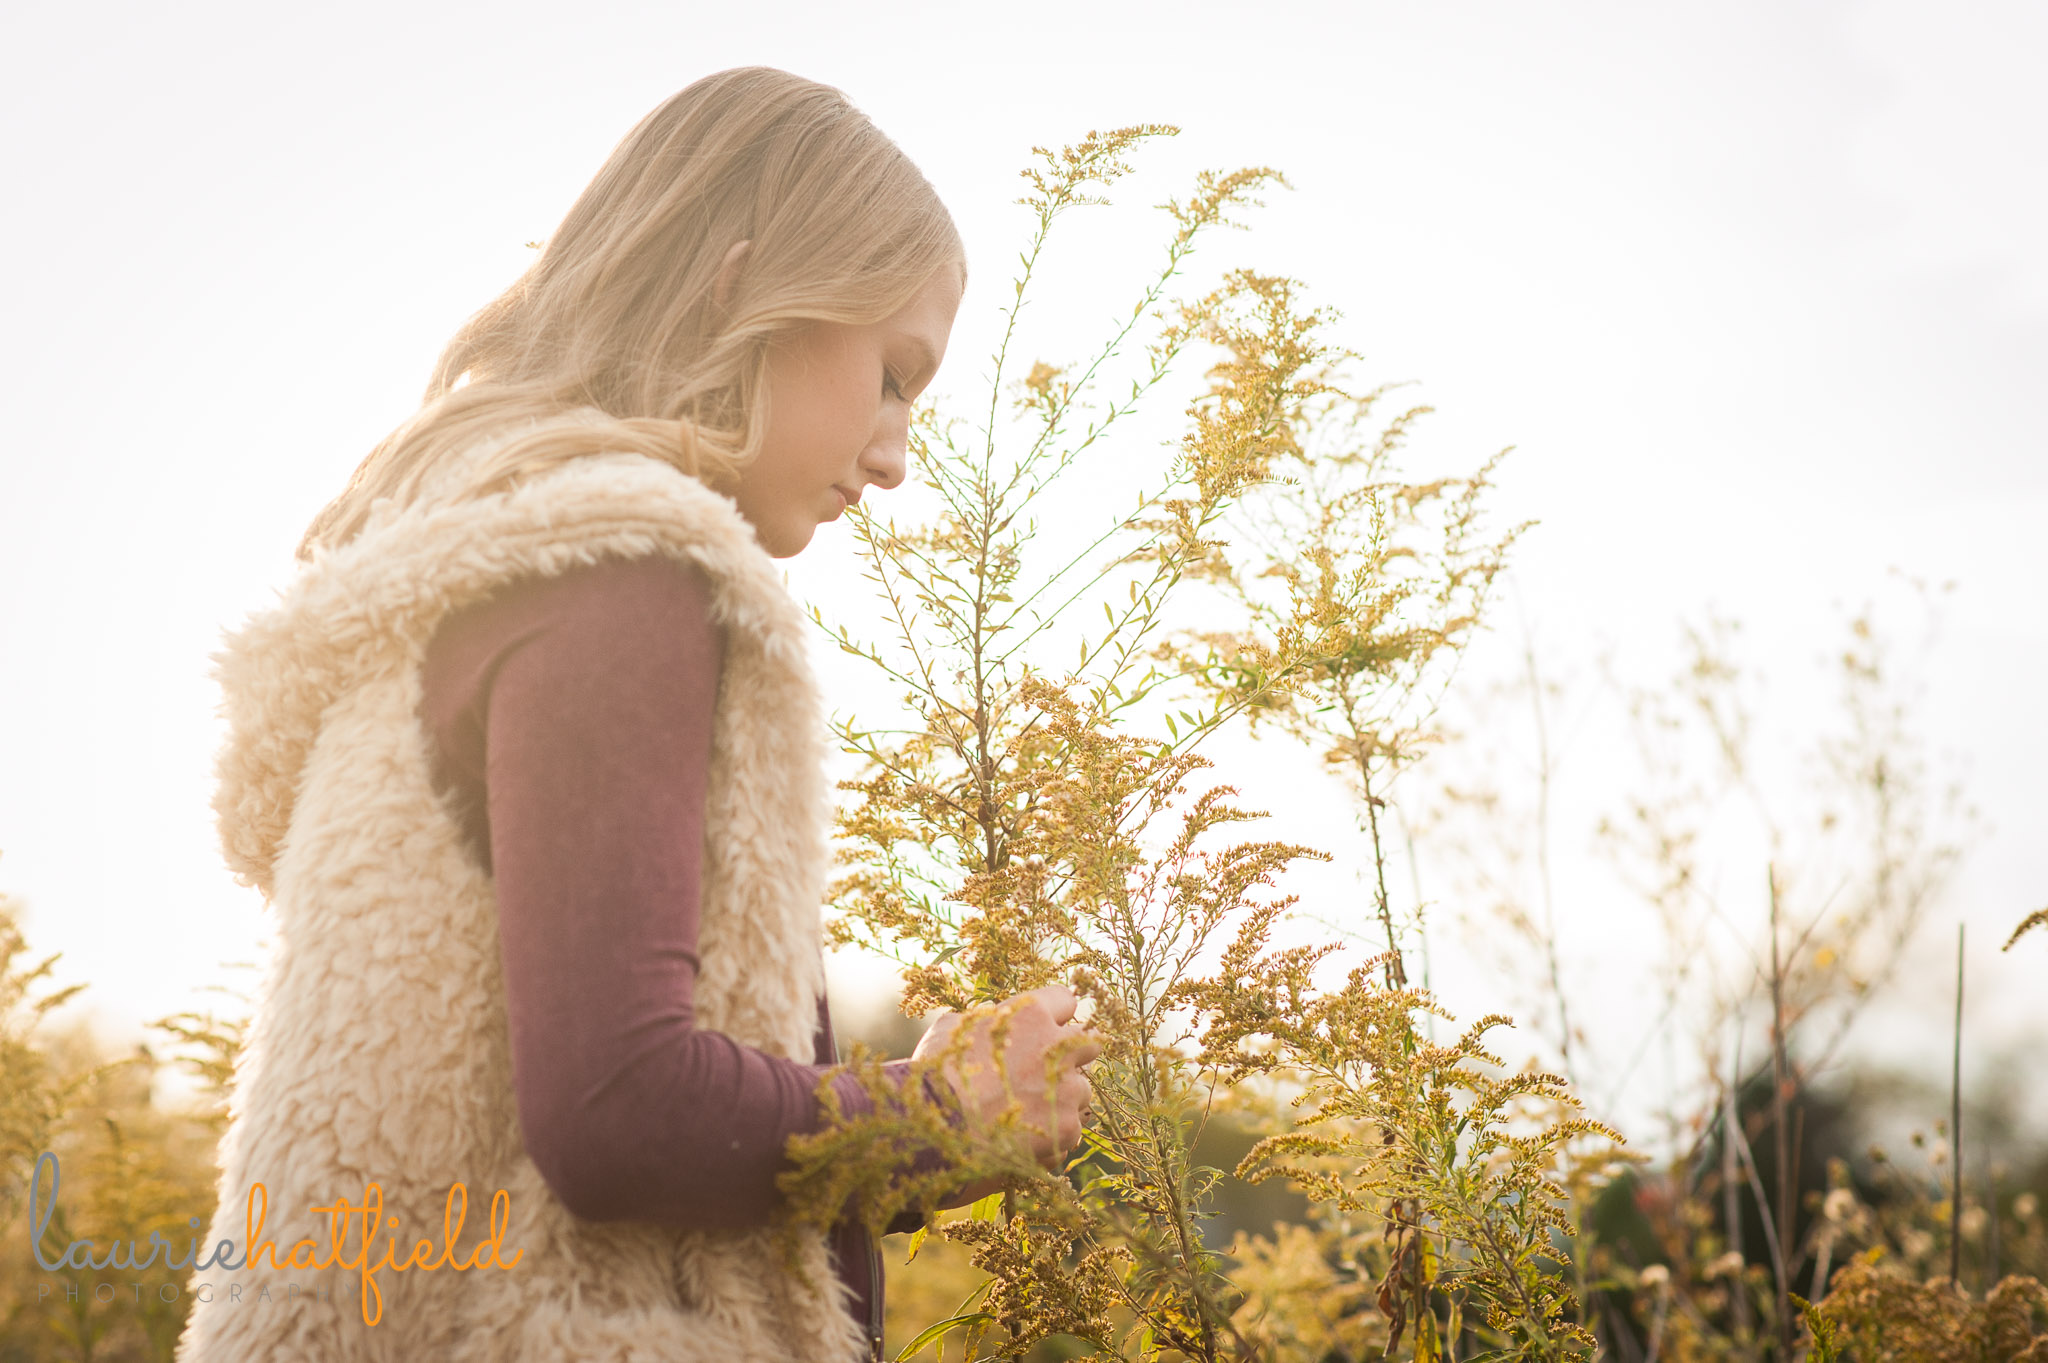 teenage girl in a field | Mobile family photographer